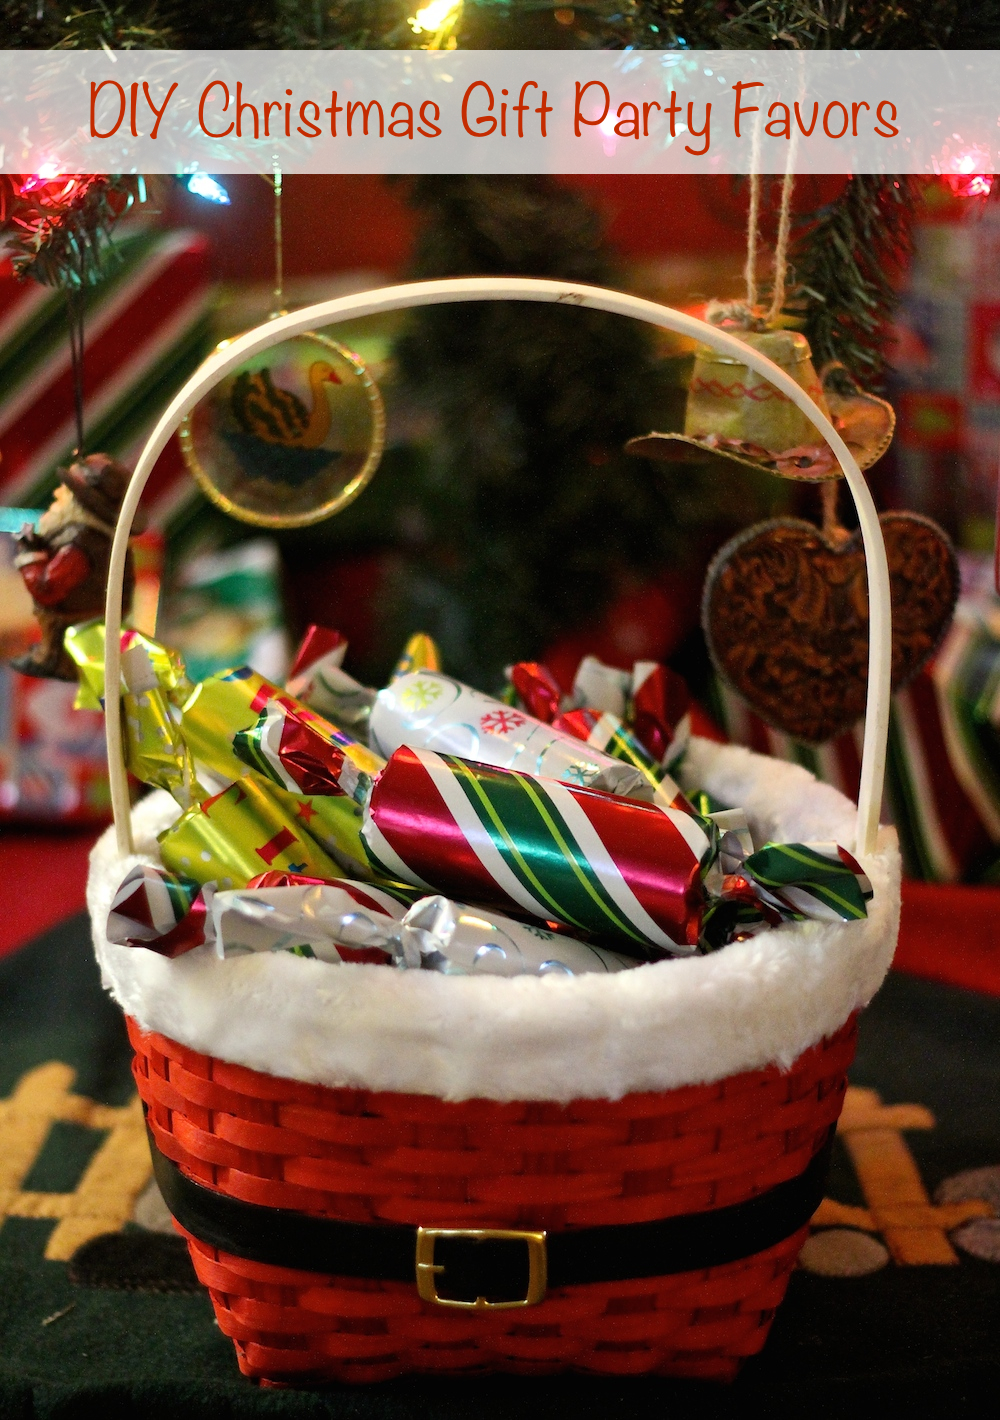 DIY Christmas Gift Party Favors